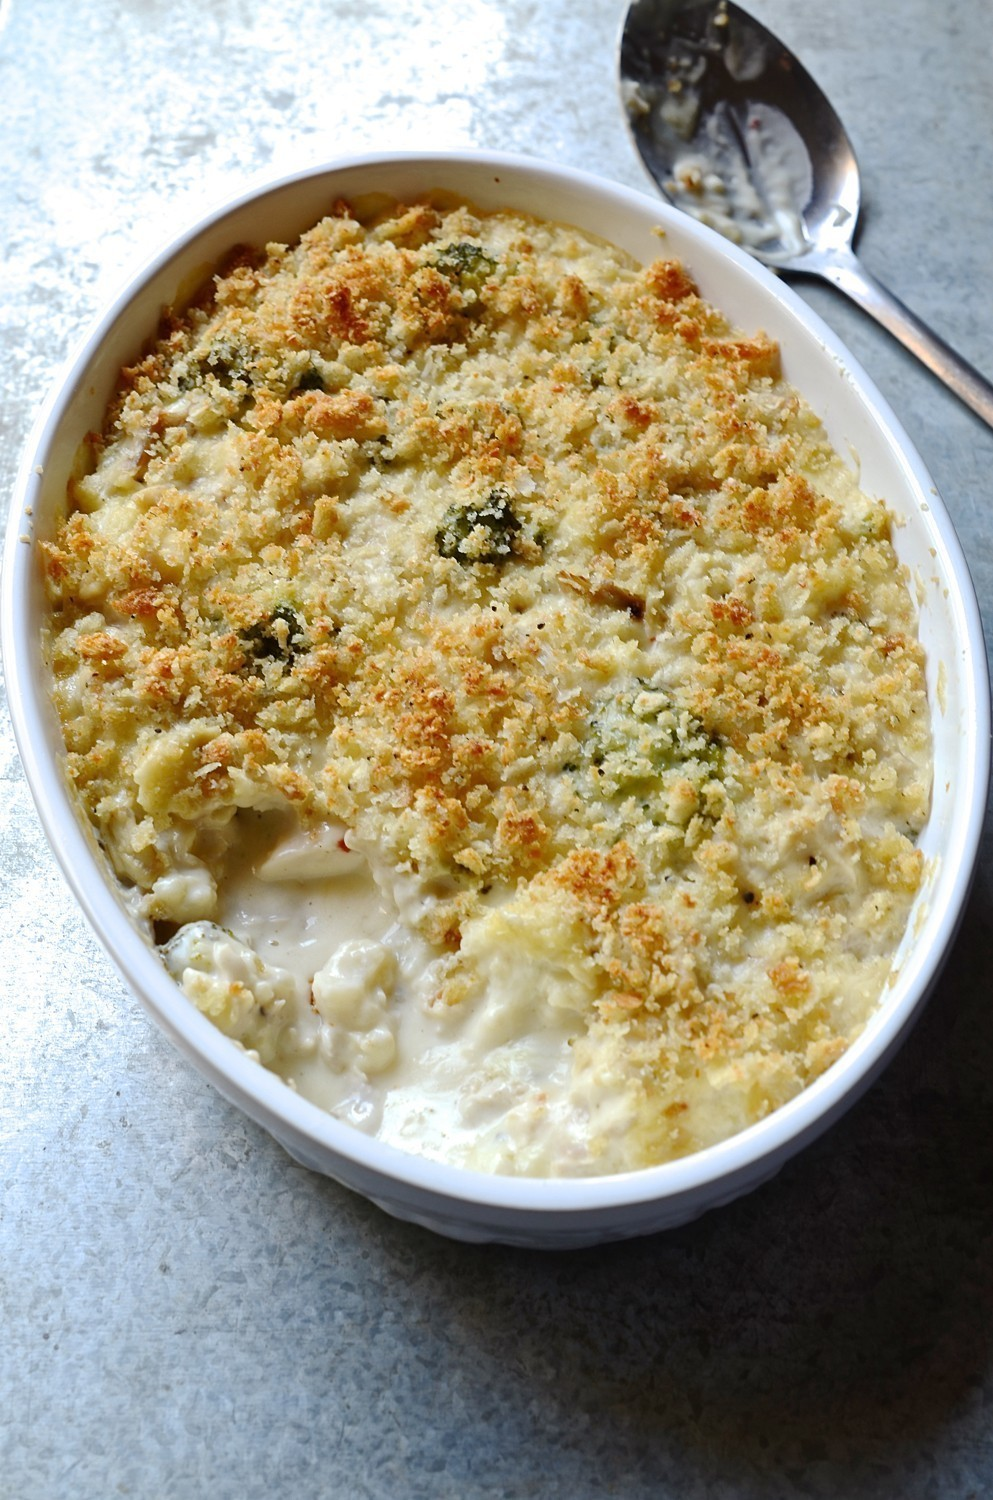 Broccoli chicken casserole | Bibbyskitchen recipes